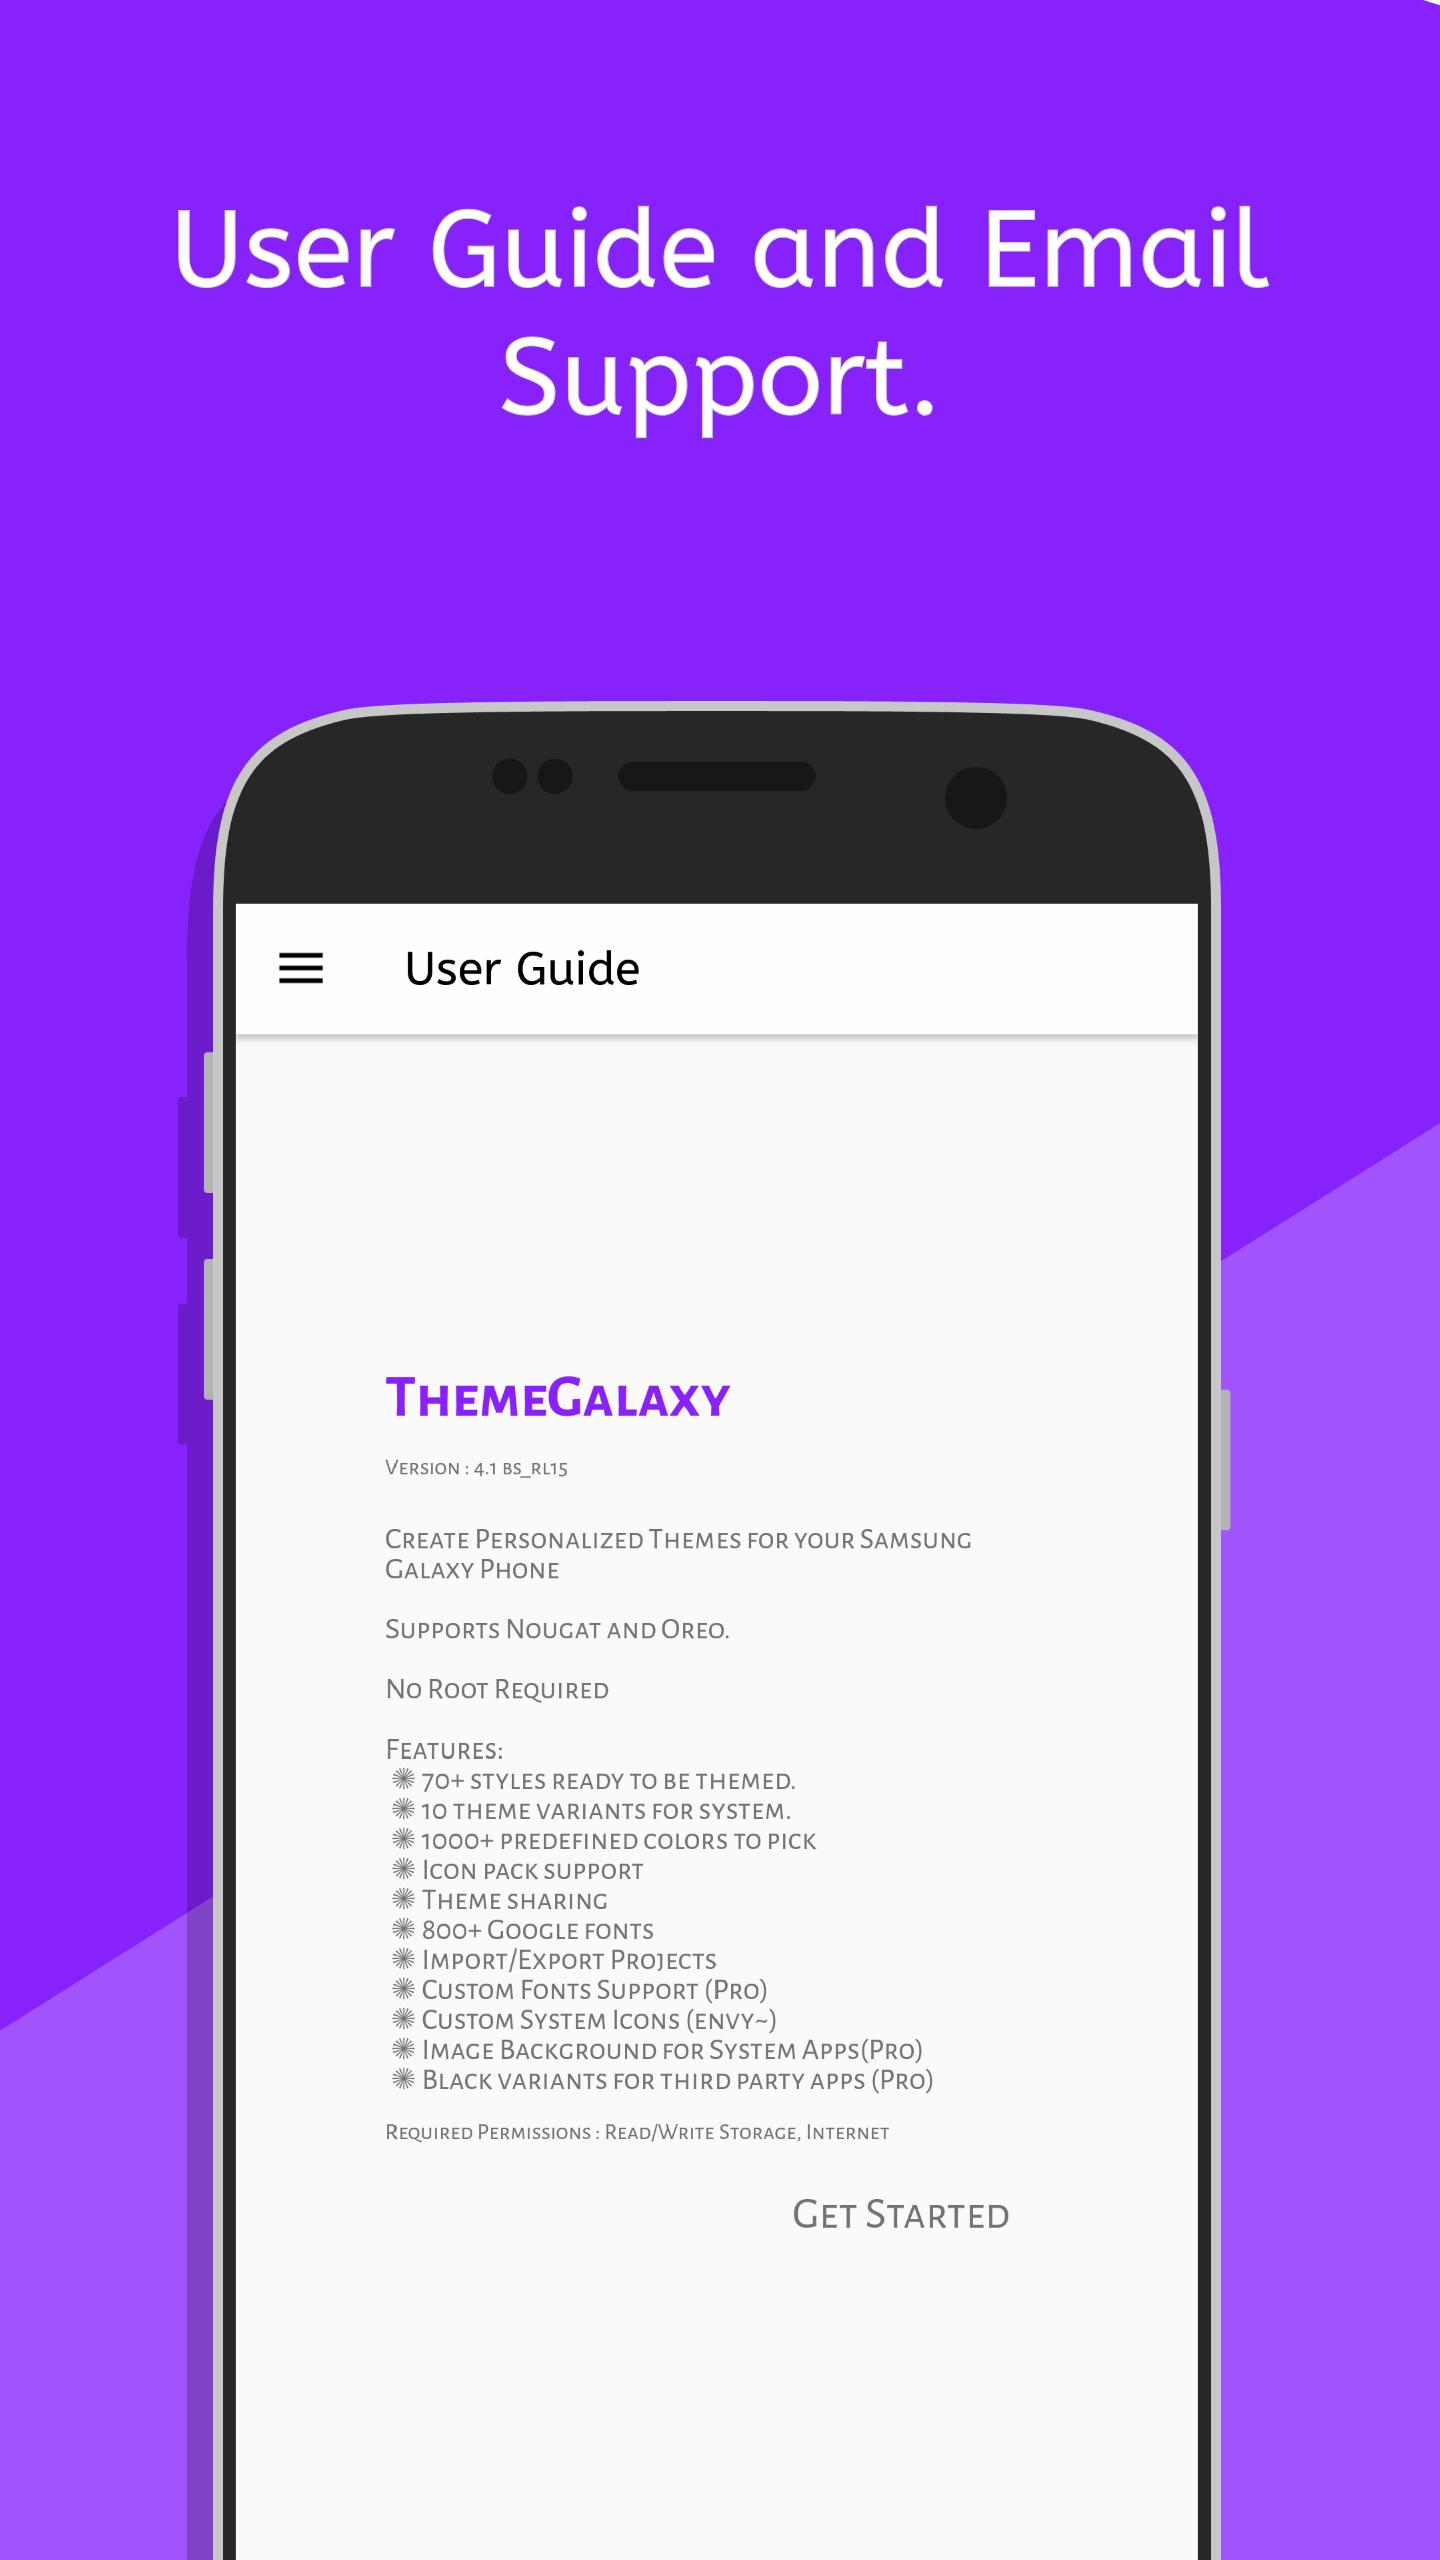 theme Galaxy - Theme Maker for Samsung Galaxy for Android